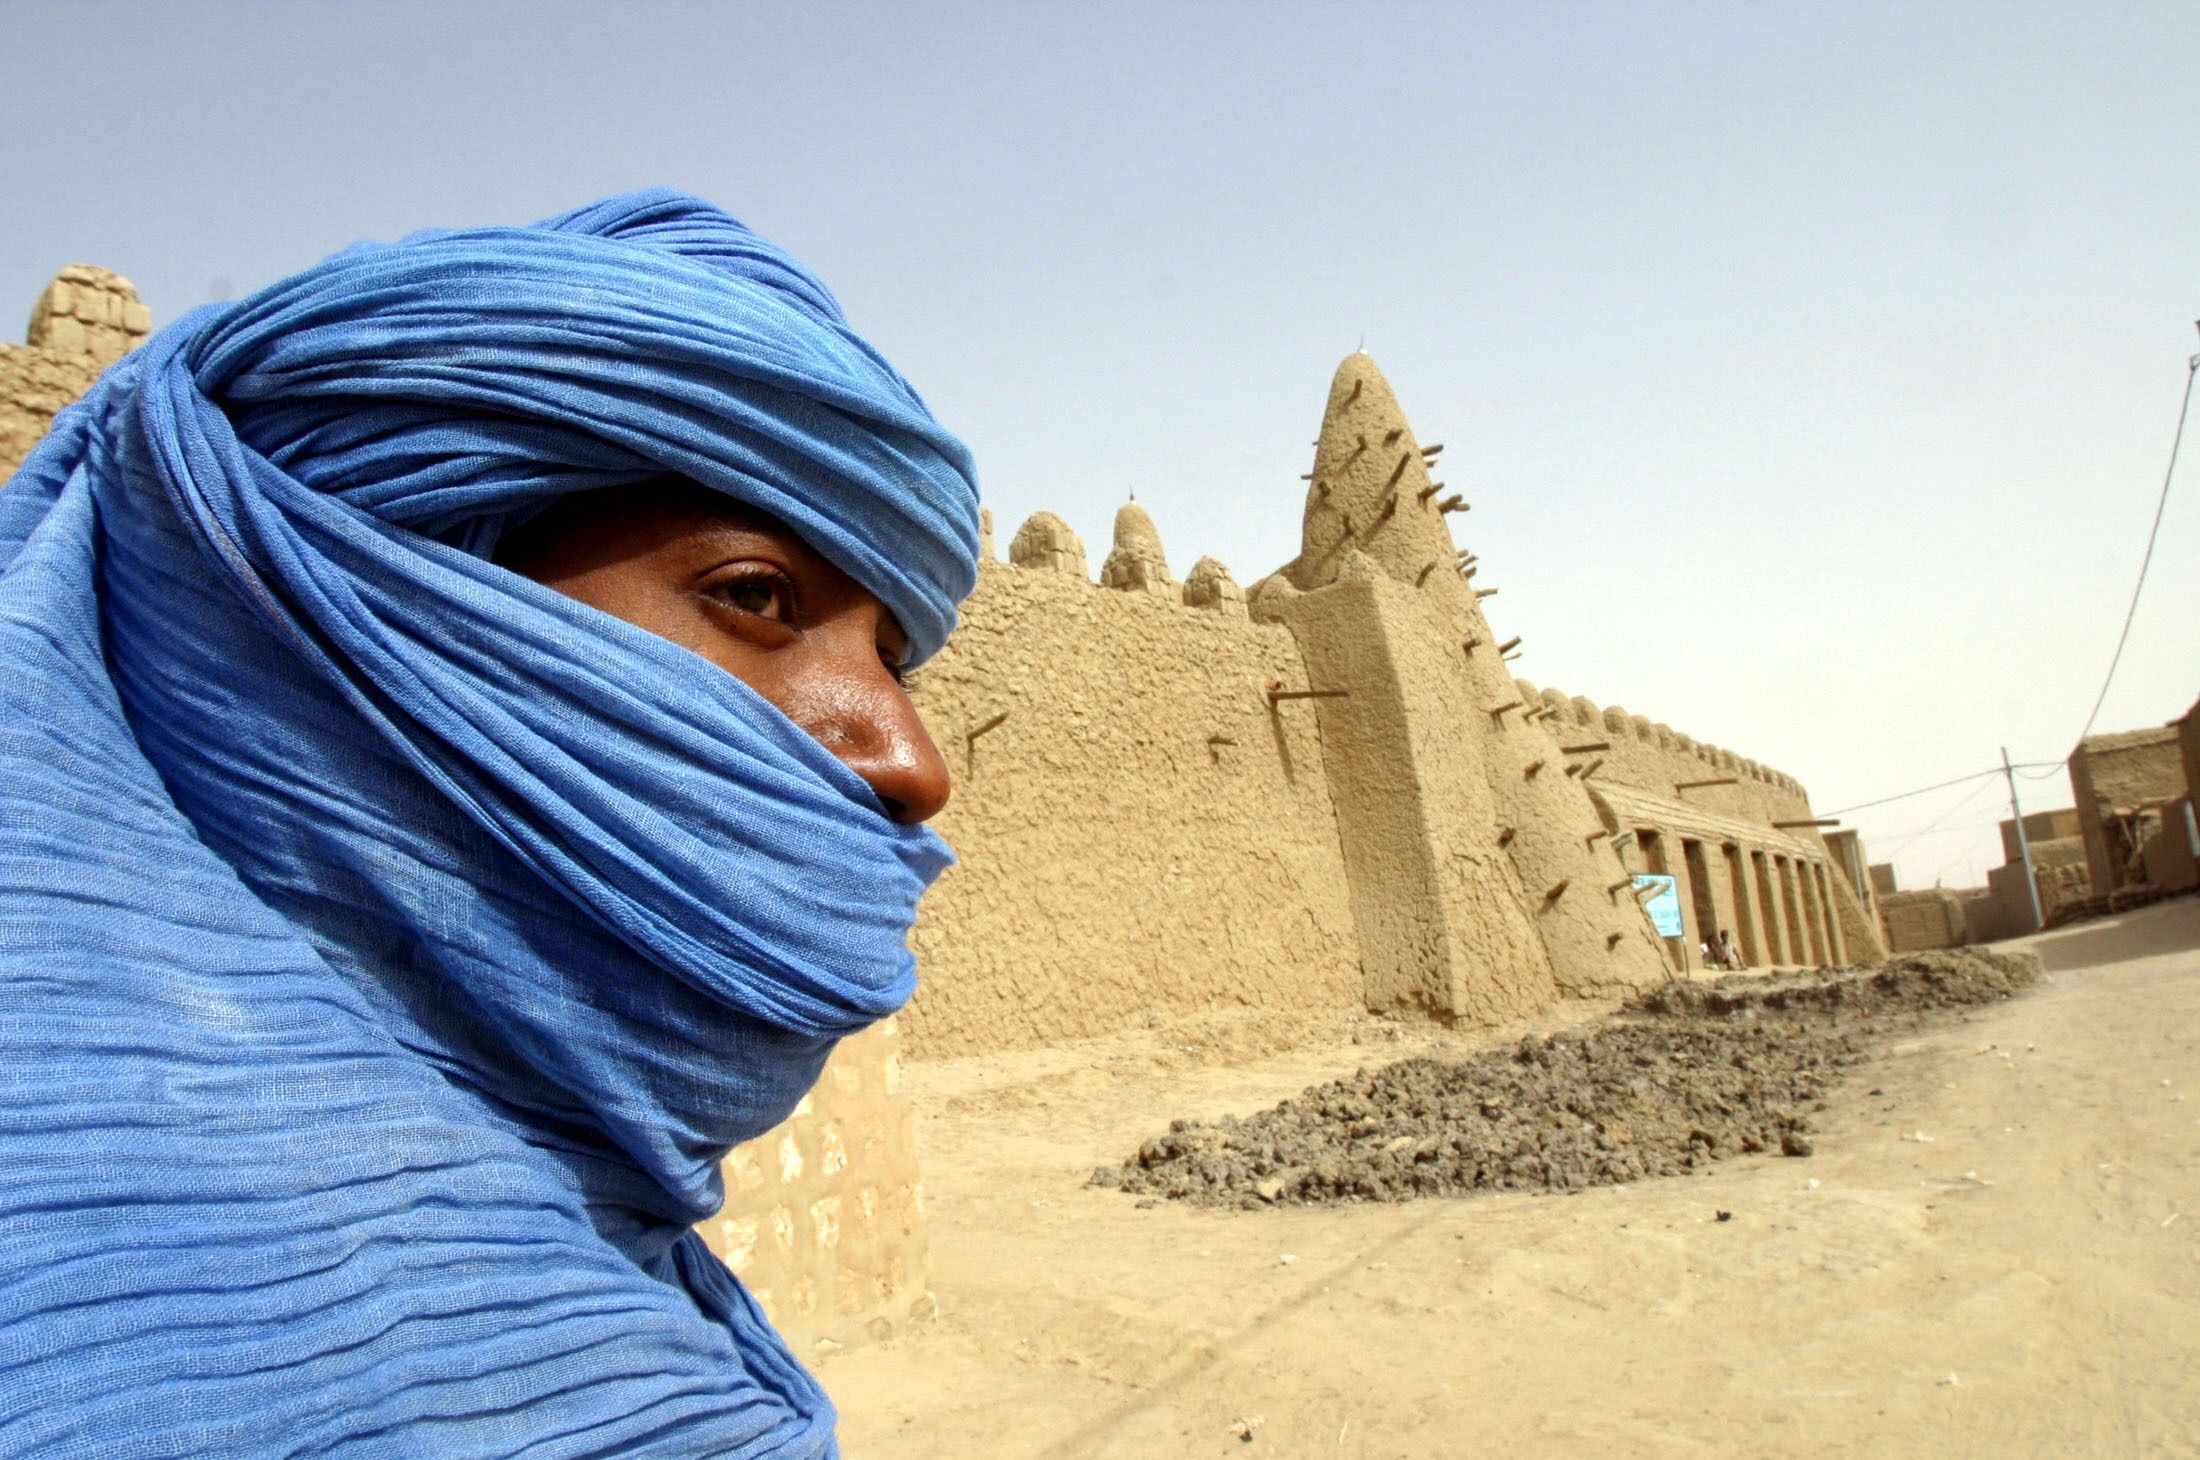 A Tuareg Nomad Stands Near A 13th Century Mosque In Timbuktu In This March 19 2004 File Photo To Match Story Mali Timbuktu 1001 Nacht Geheimnisvoll Geheimnis